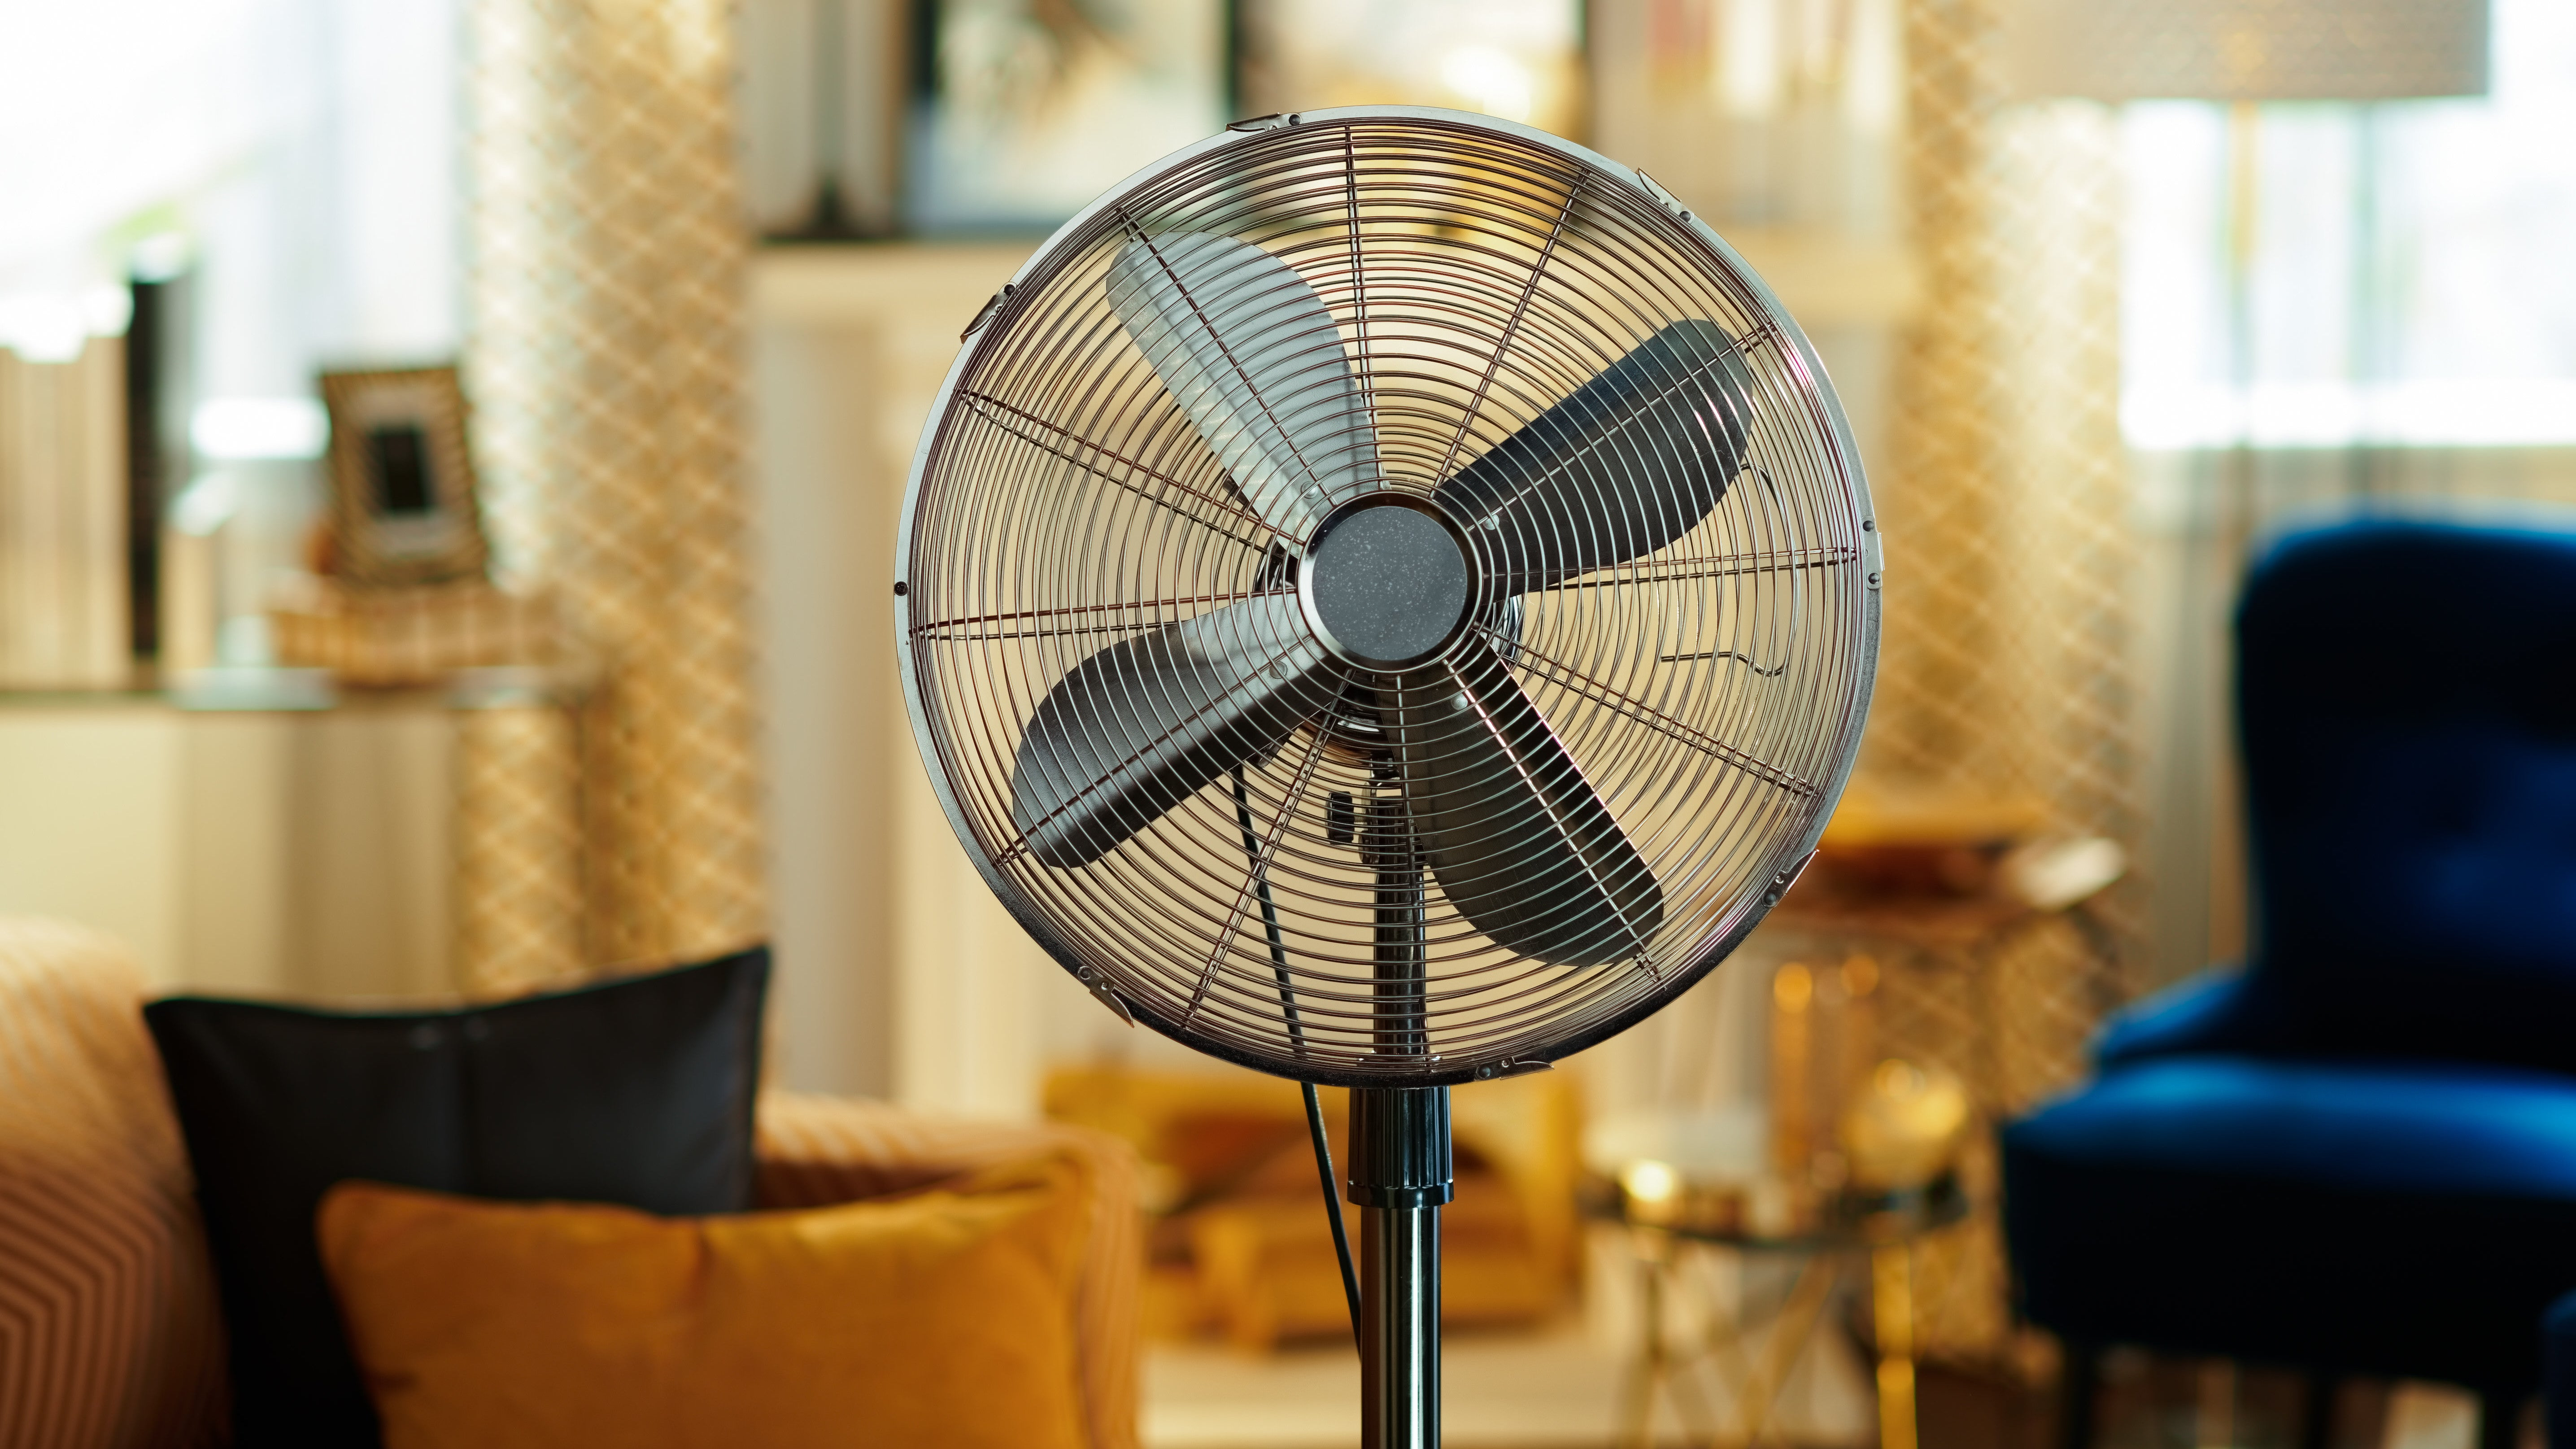 A Fan Won't Always Cool You Off In Hot, Dry Weather